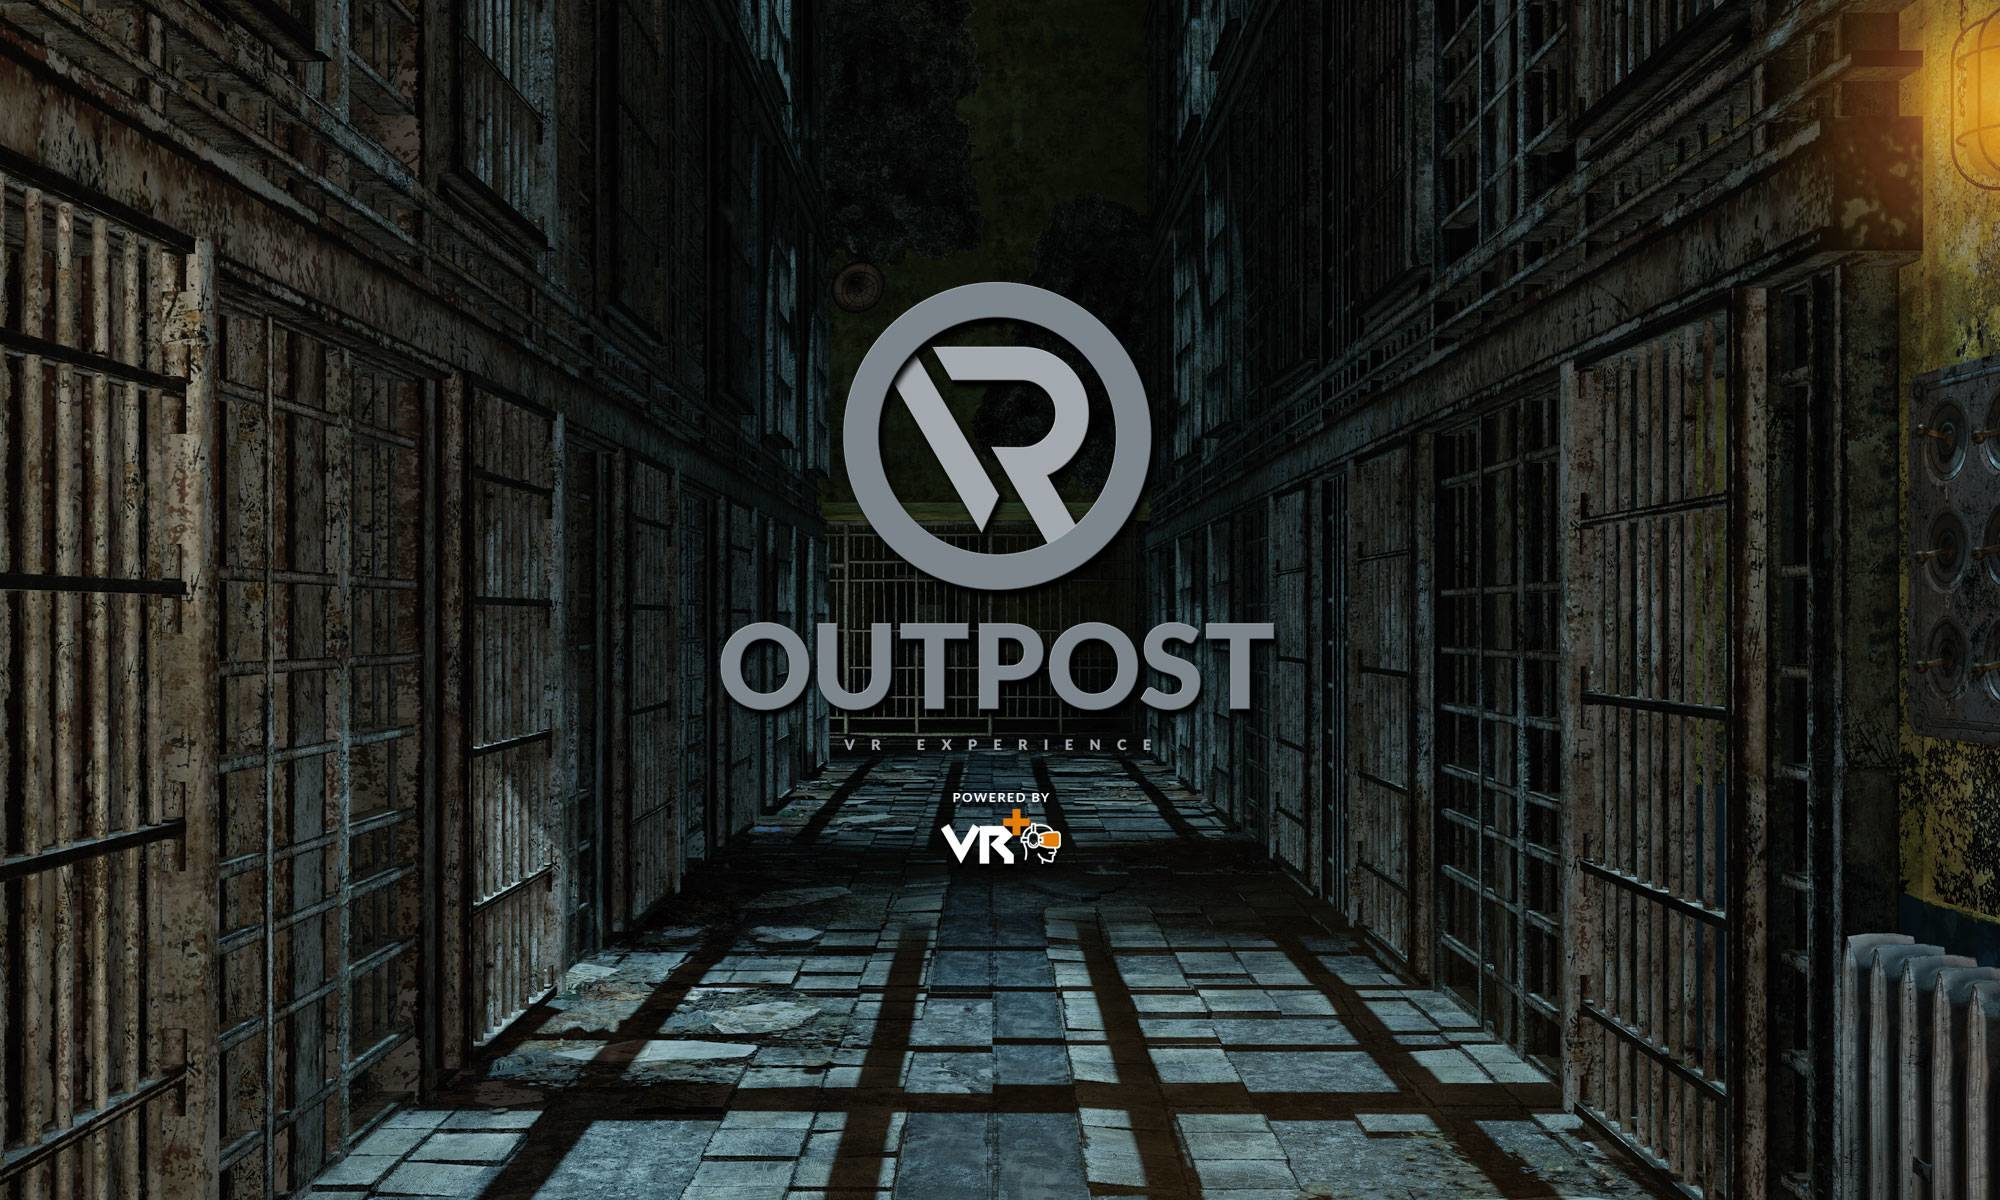 Outpost VR